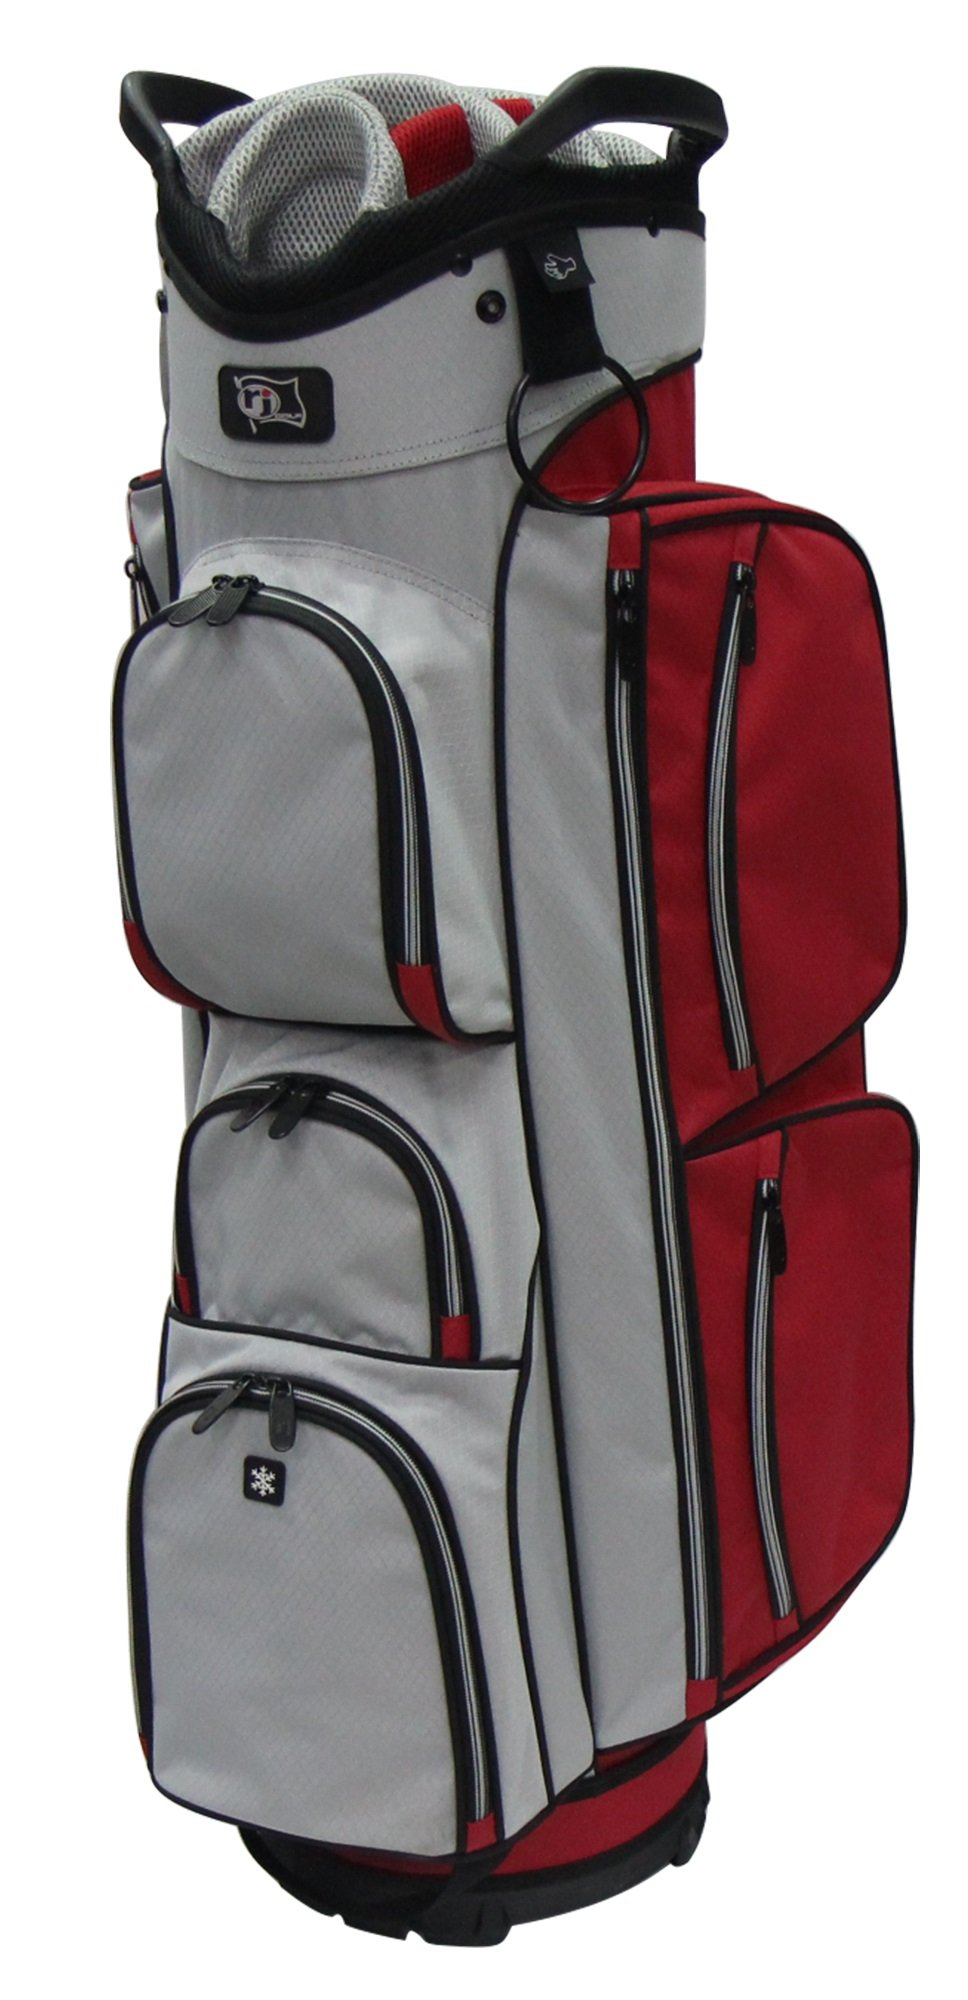 RJ Sports EL-680 True Cart Bag, 9.5'', Red/Grey by R J Sports